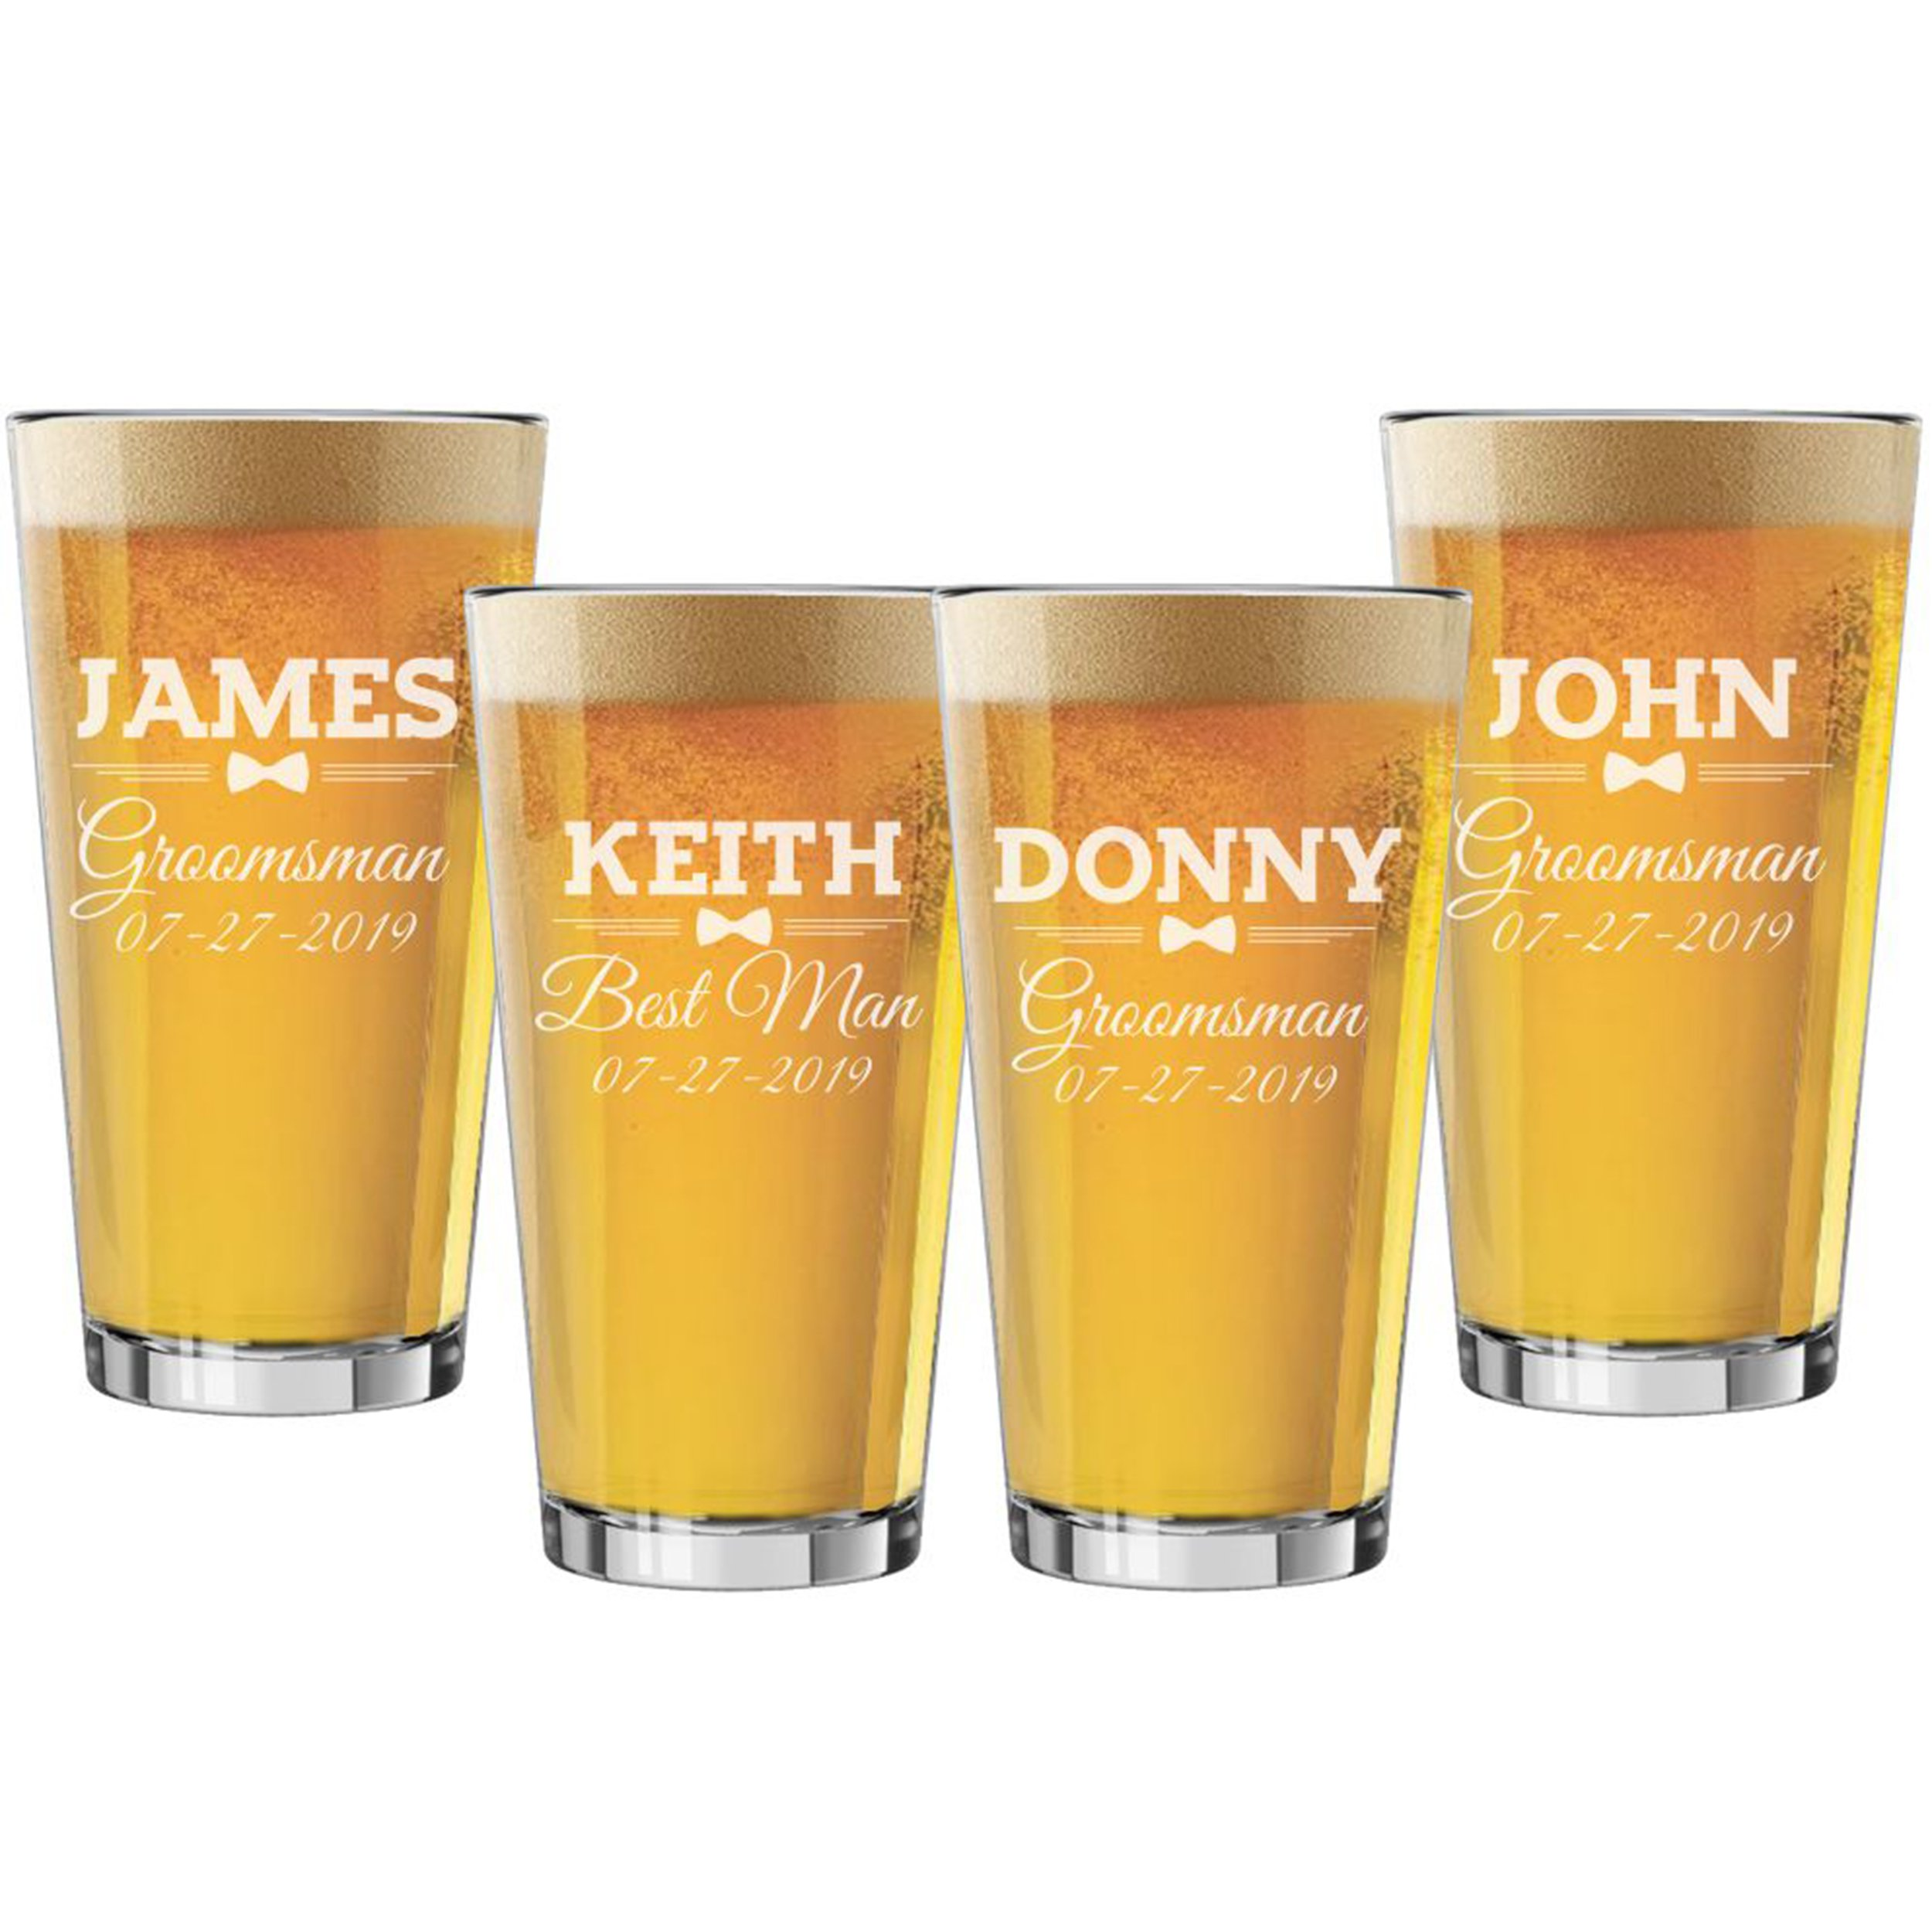 Set of 3, Set of 5, Set of 7 and more Groomsman Wedding Party 16 oz Pint Beer Glasses - Custom Engraved and Personalized for Free - Bow Tie Style (4) by The Wedding Party Store (Image #3)